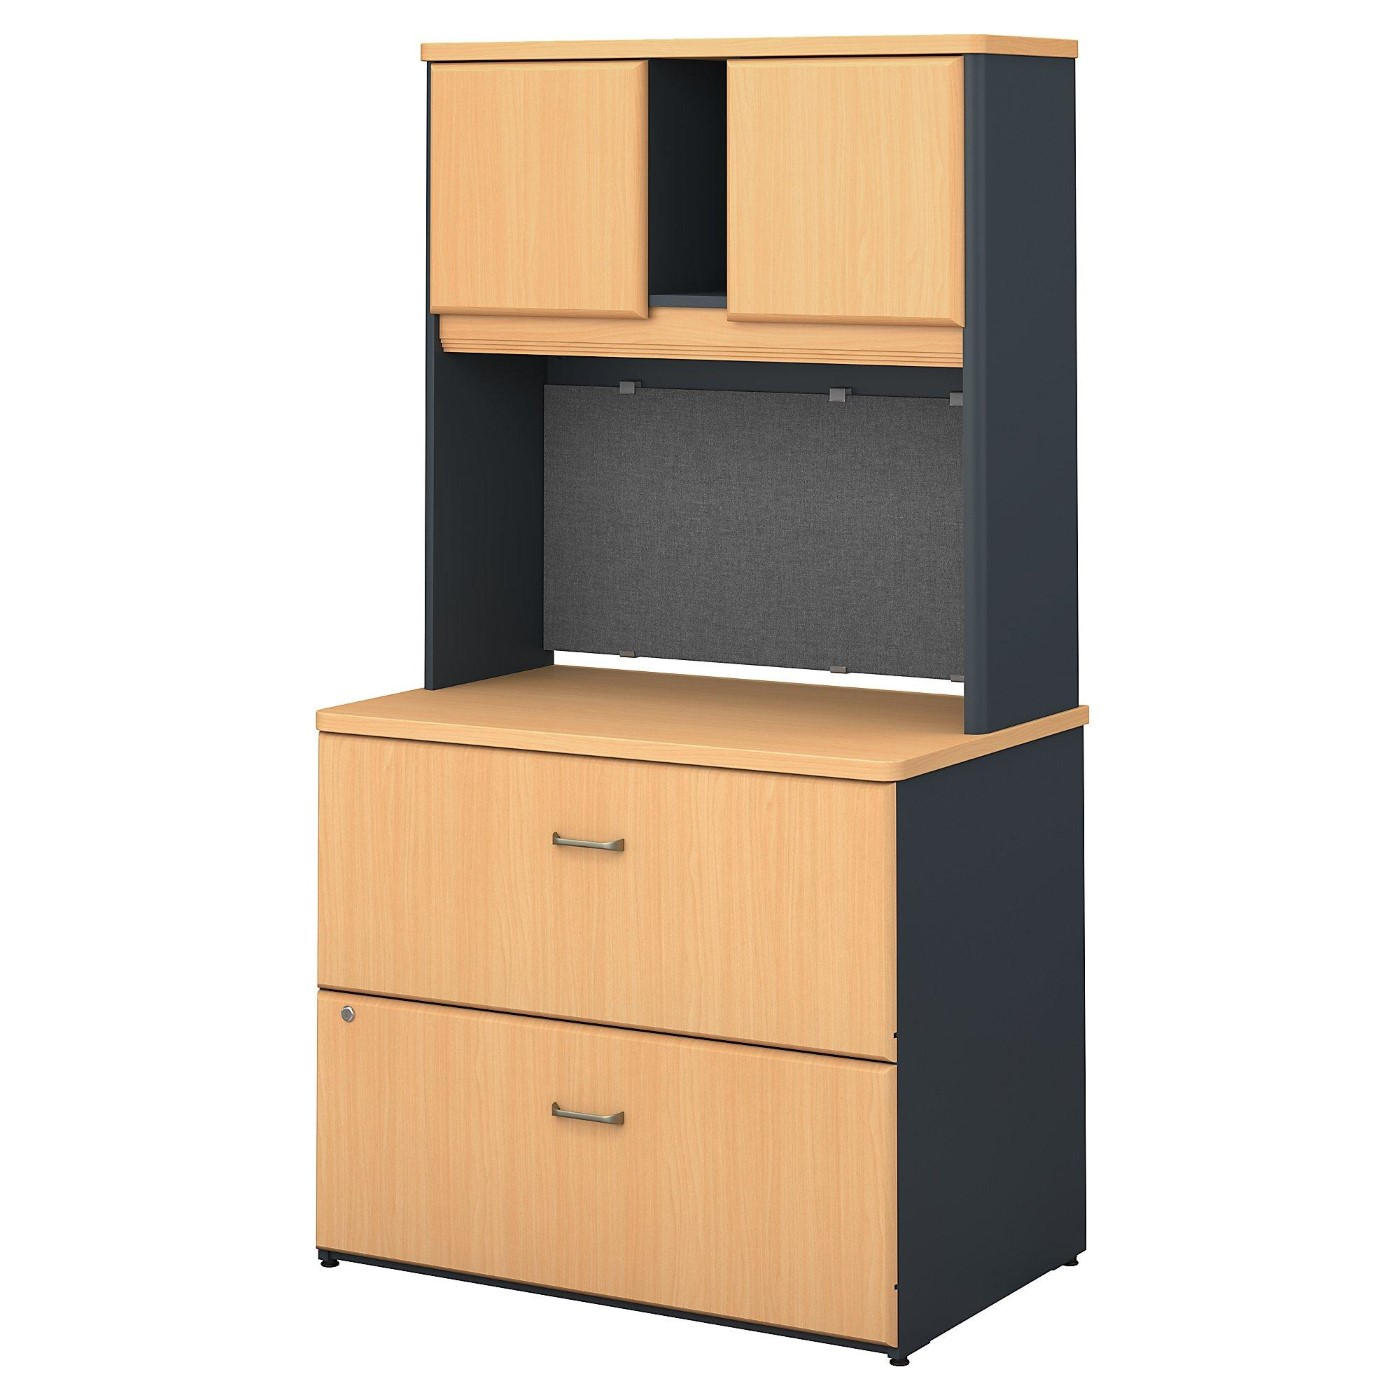 <font color=#c60><b>BUSH BUSINESS FURNITURE SERIES A 36W LATERAL FILE CABINET WITH HUTCH. FREE SHIPPING:</font></b>